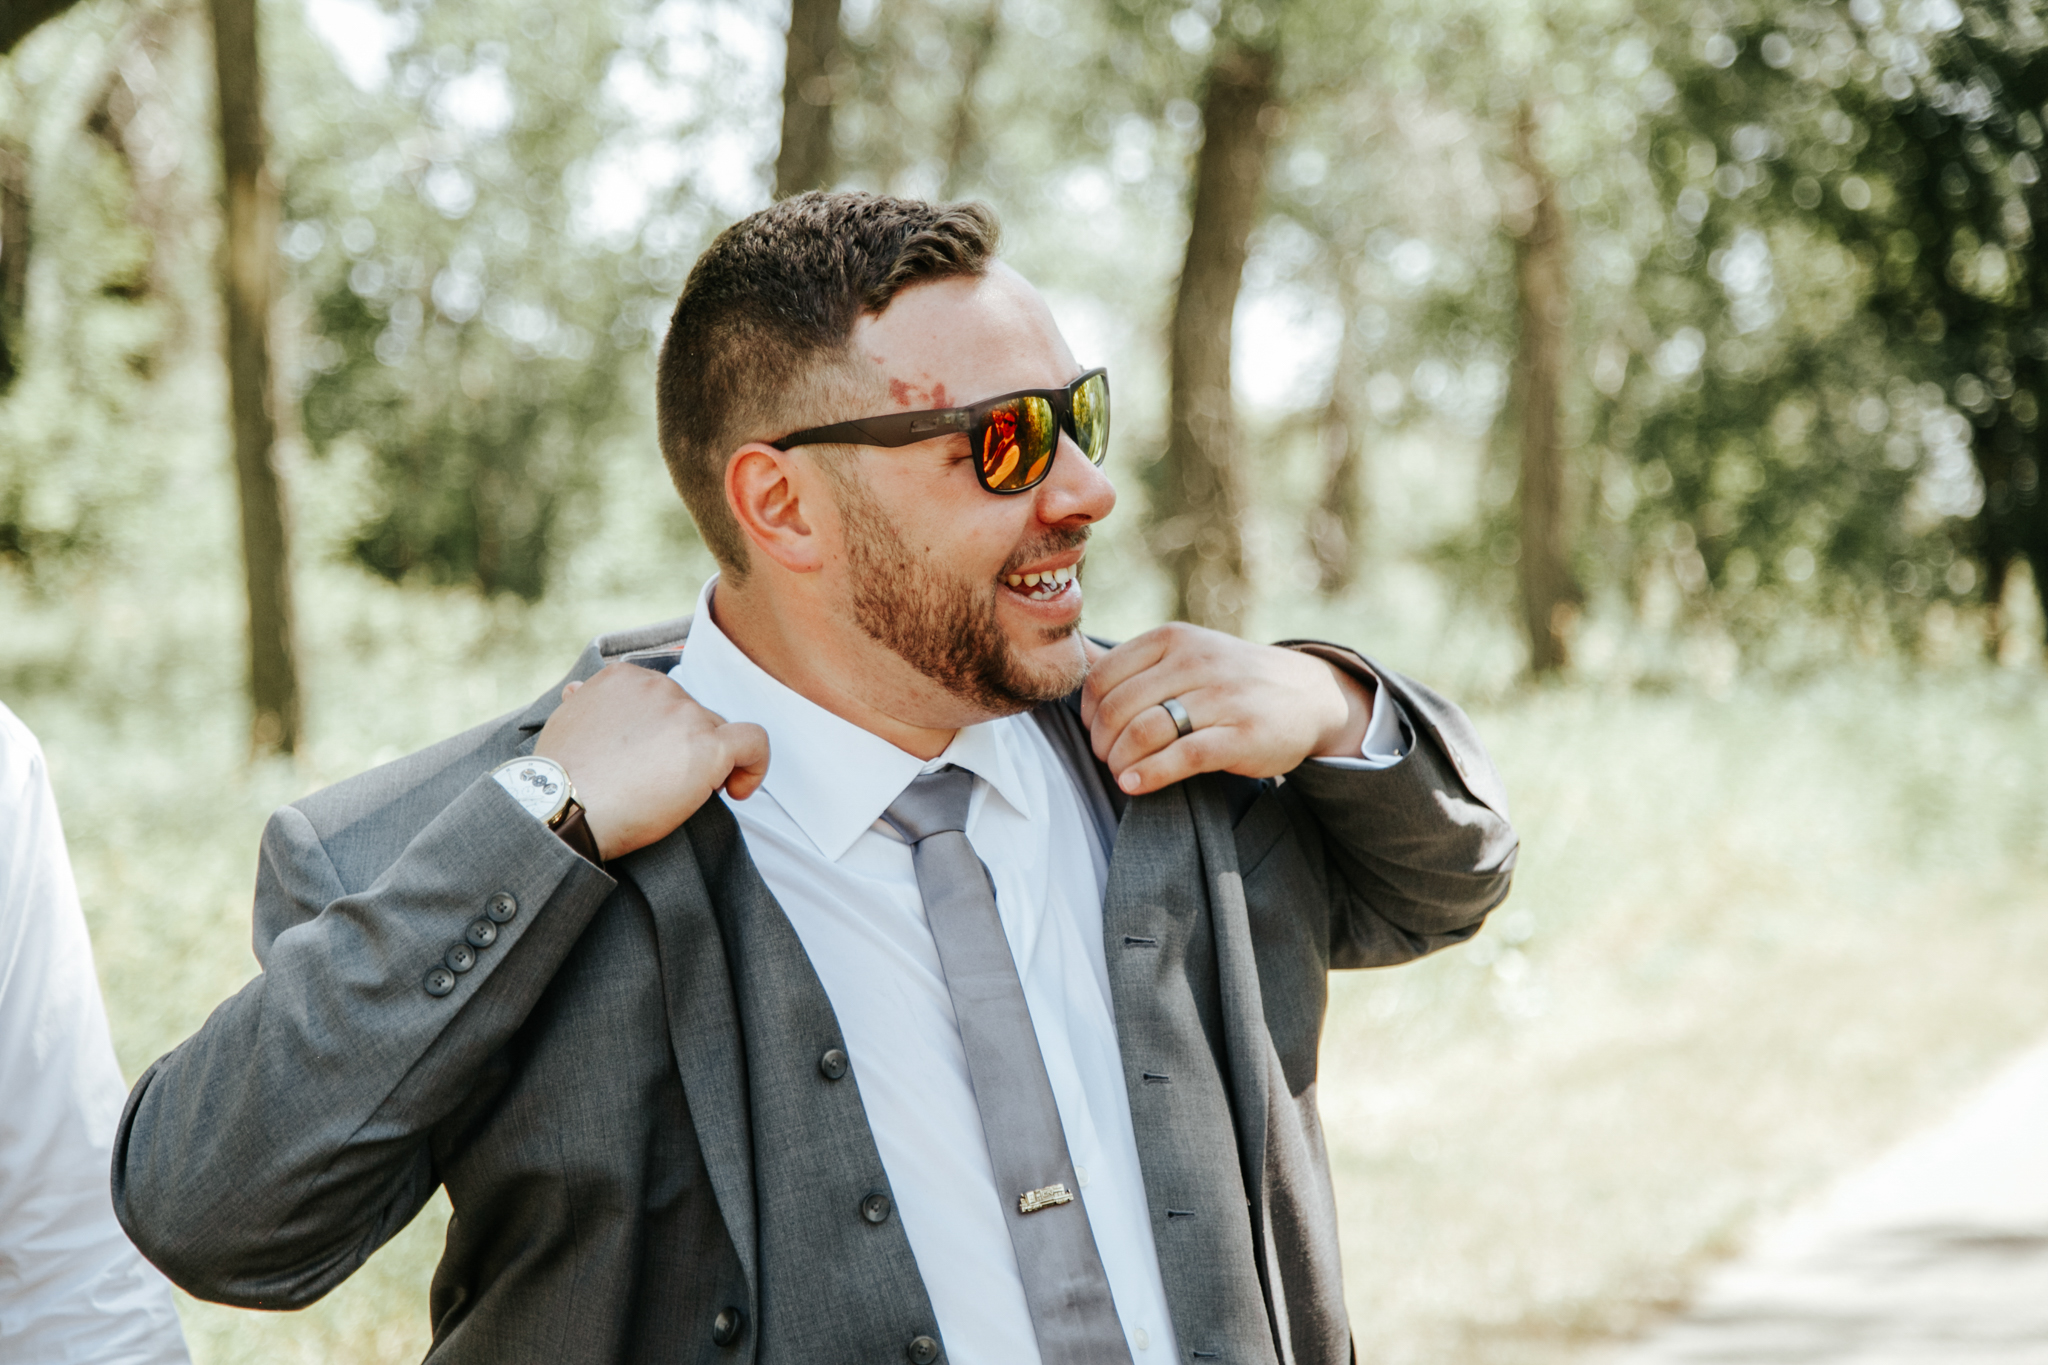 lethbridge-wedding-photographer-love-and-be-loved-photography-trent-danielle-galt-reception-picture-image-photo-109.jpg